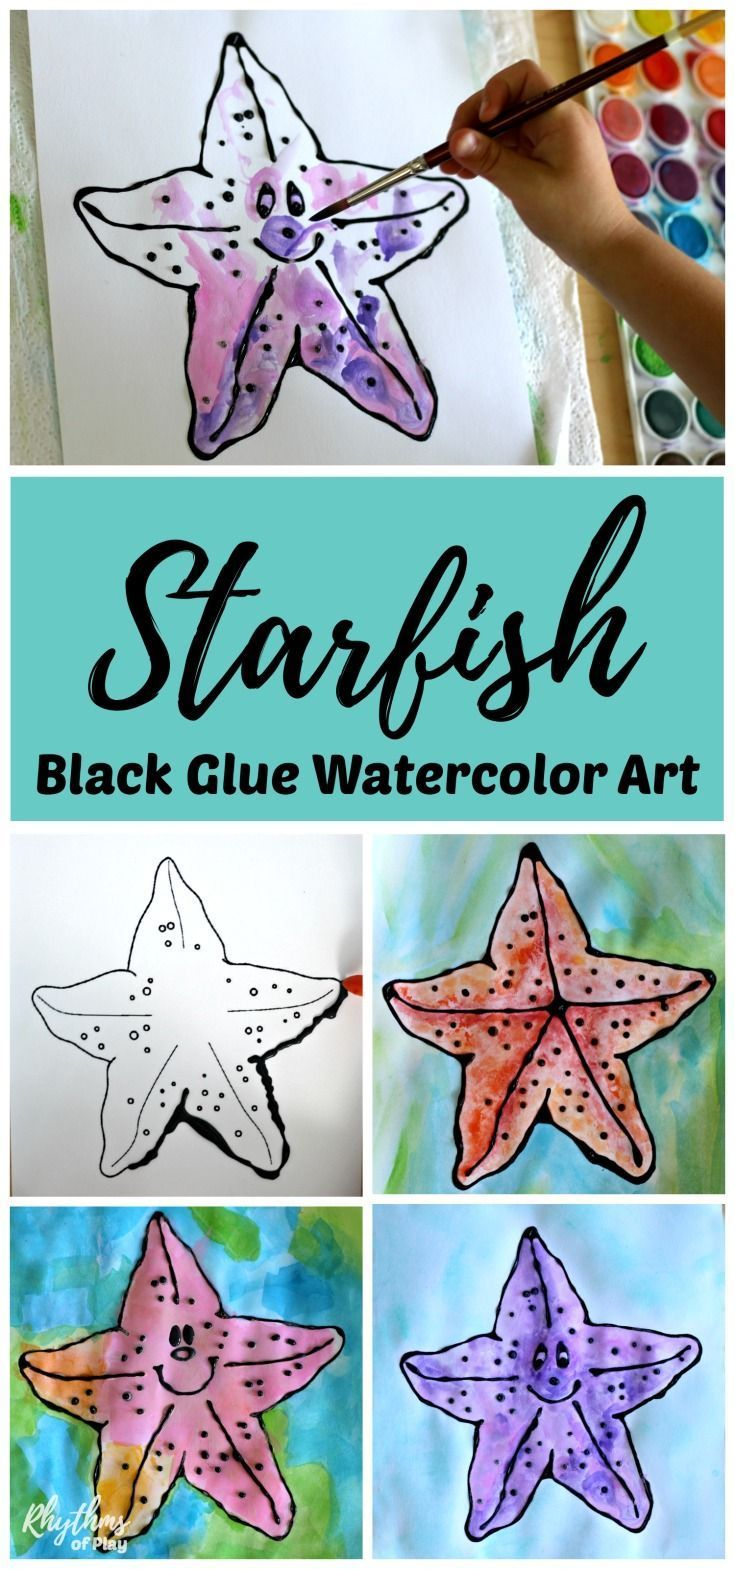 Outlining a starfish with black glue and painting it with watercolors is a fun and easy art project. A gorgeous under the sea ocean painting idea for kids, teens, and adults. Includes a FREE printable template that is blank in the middle so the artist can decide how to finish it. The simple craft tutorial includes how to make black glue and basic beginning watercolor techniques.